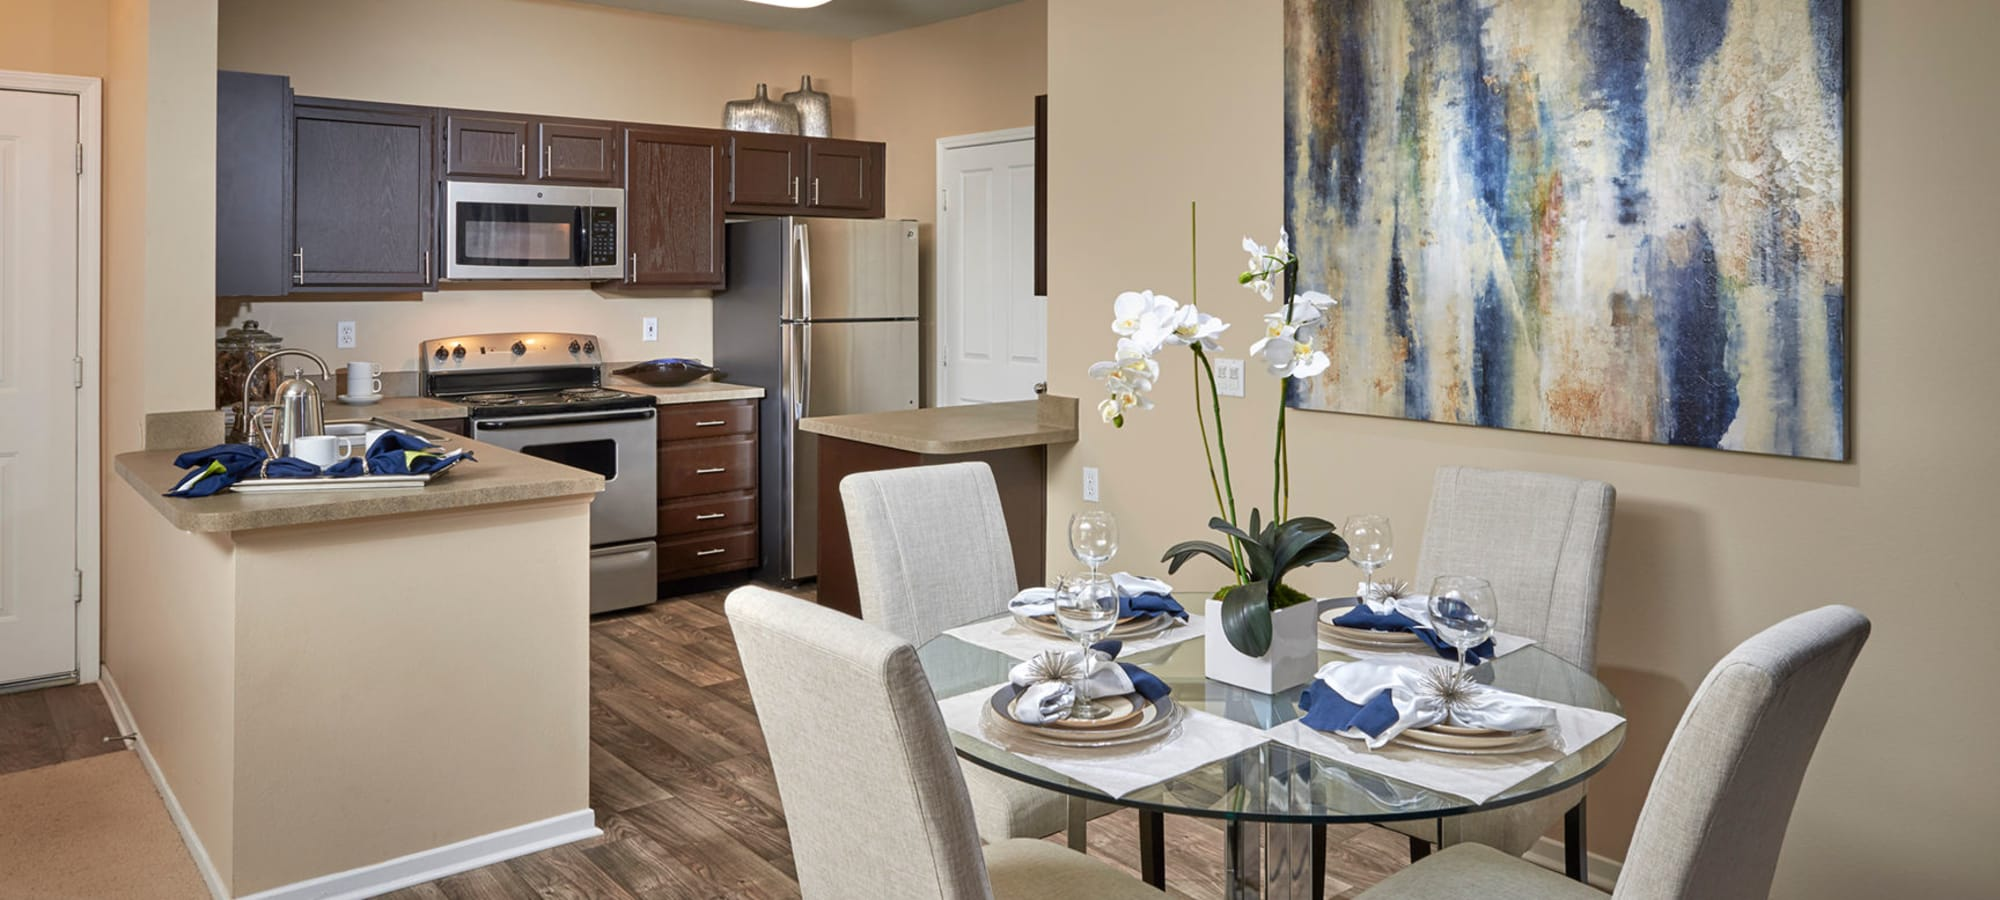 Apartments from Legend Oaks Apartments in Aurora, Colorado